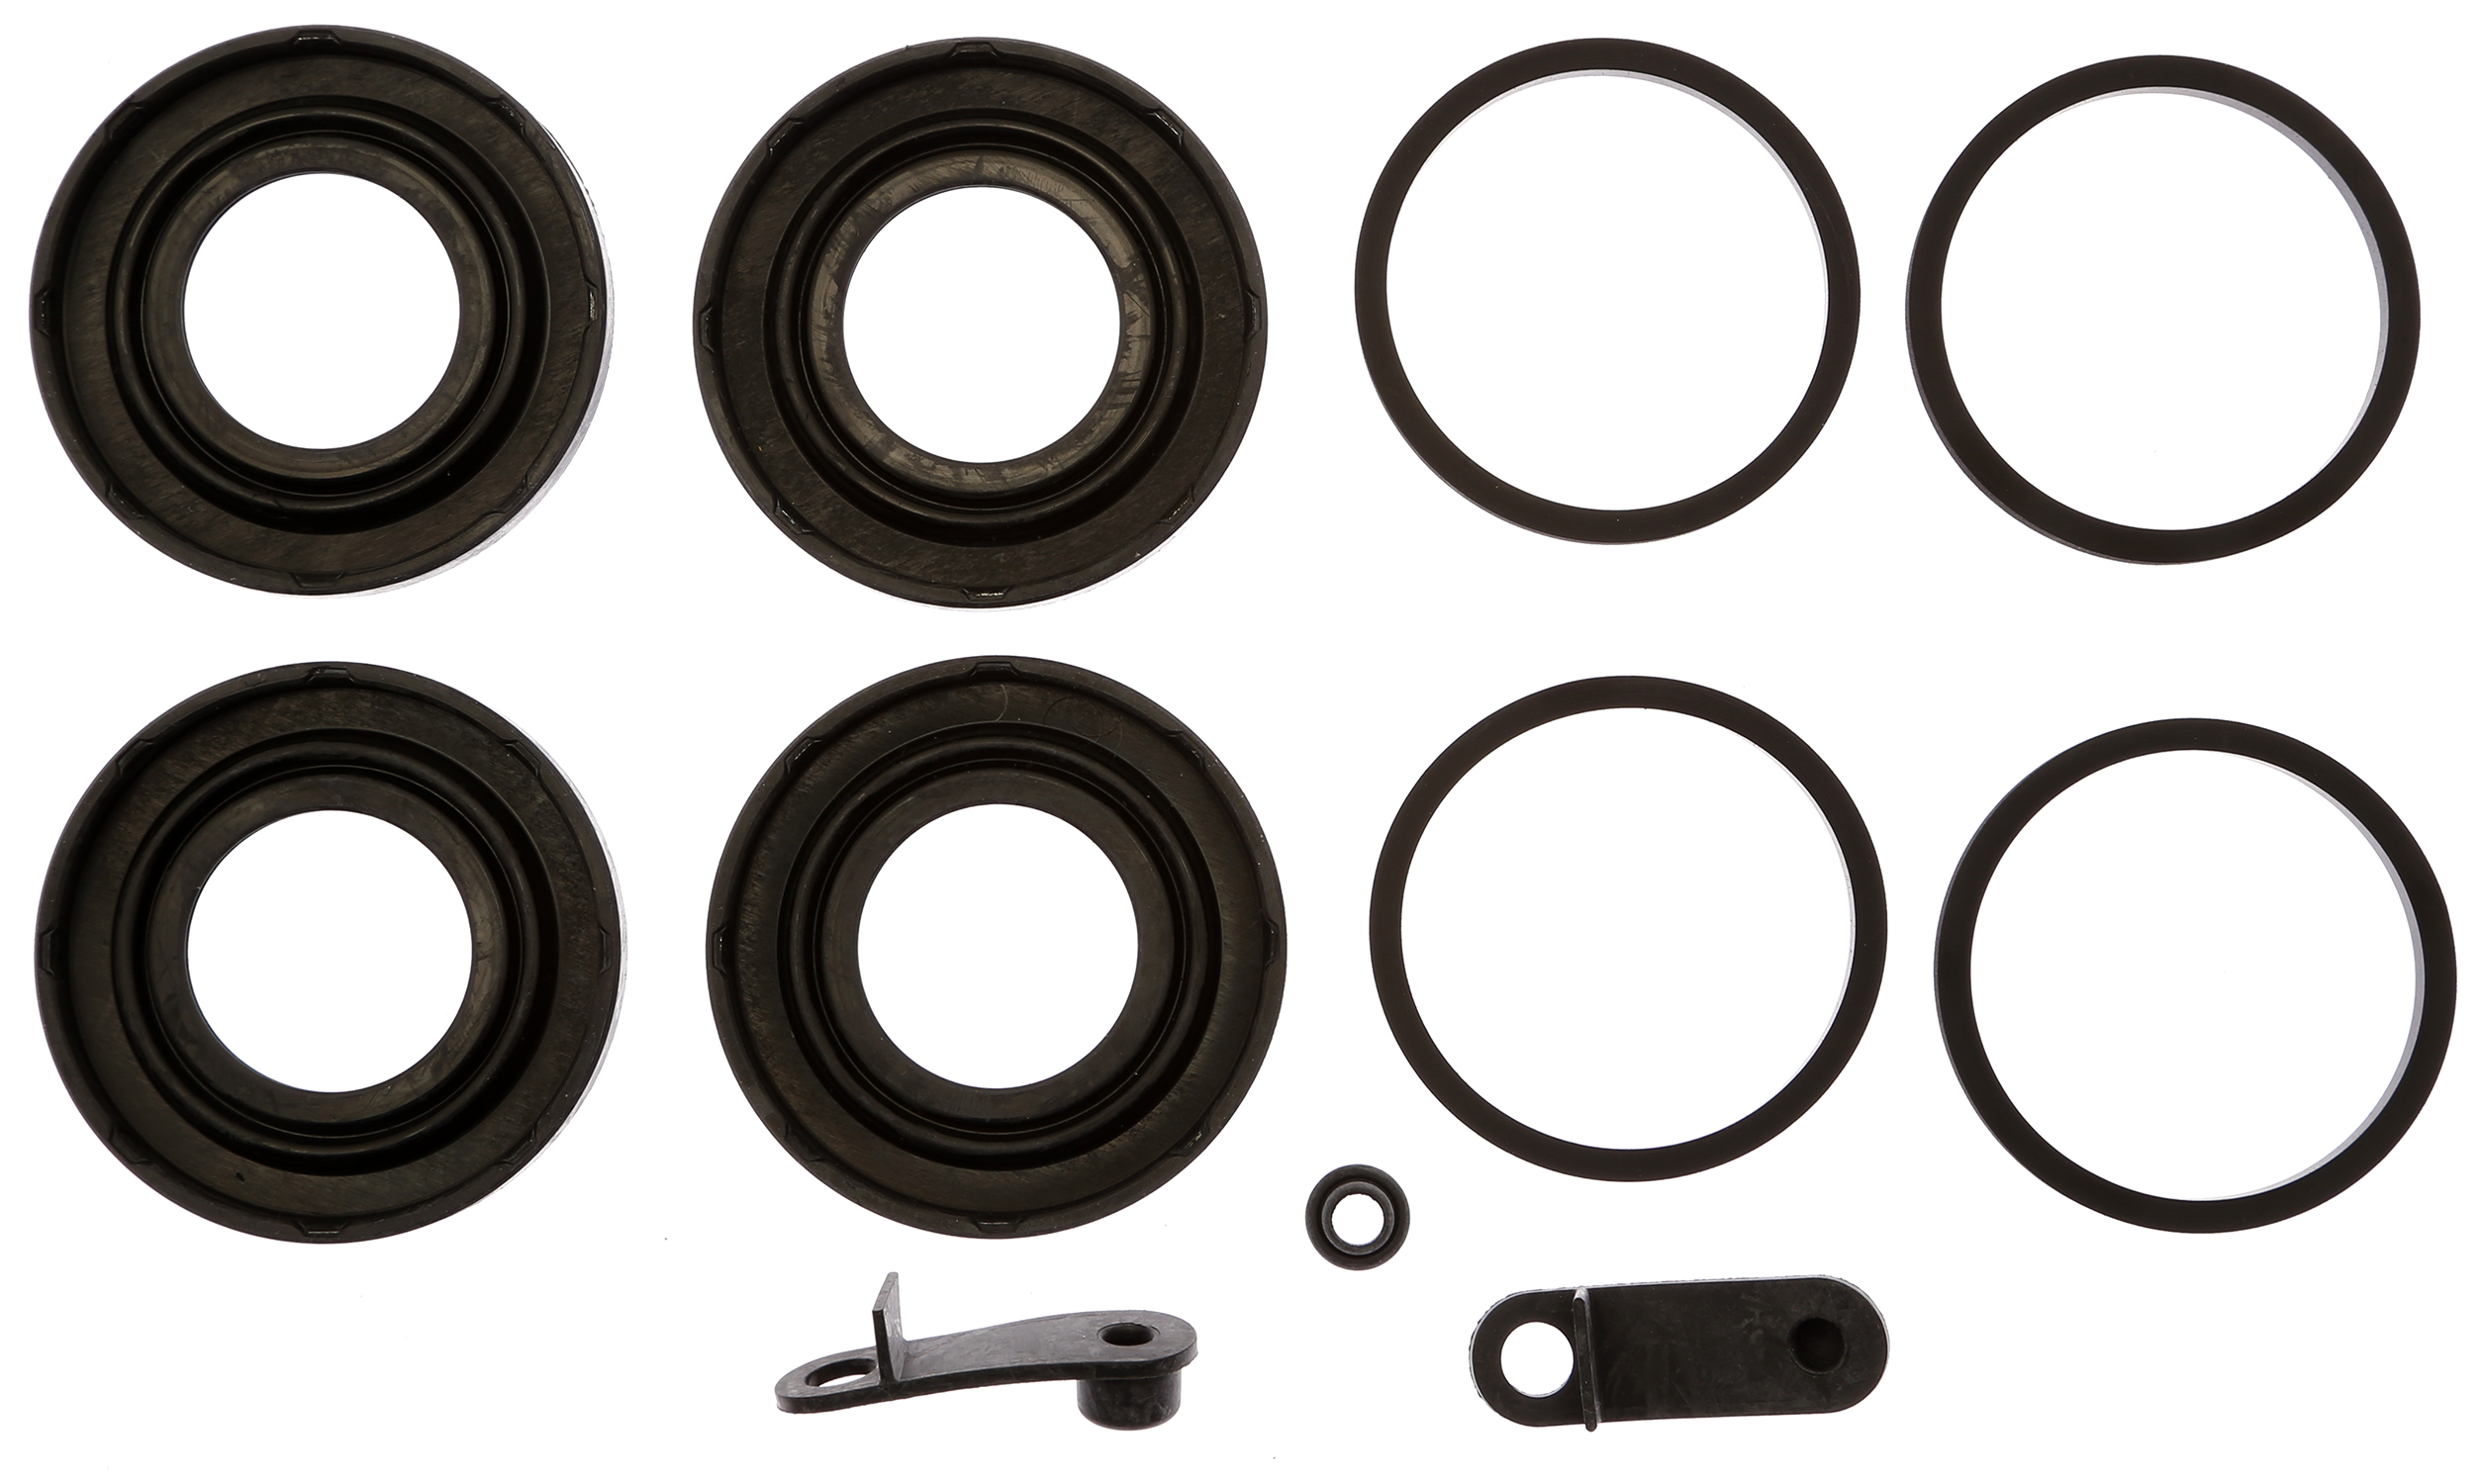 ACDELCO GOLD/PROFESSIONAL BRAKES - Disc Brake Caliper Seal Kit (Front) - ADU 18H3330